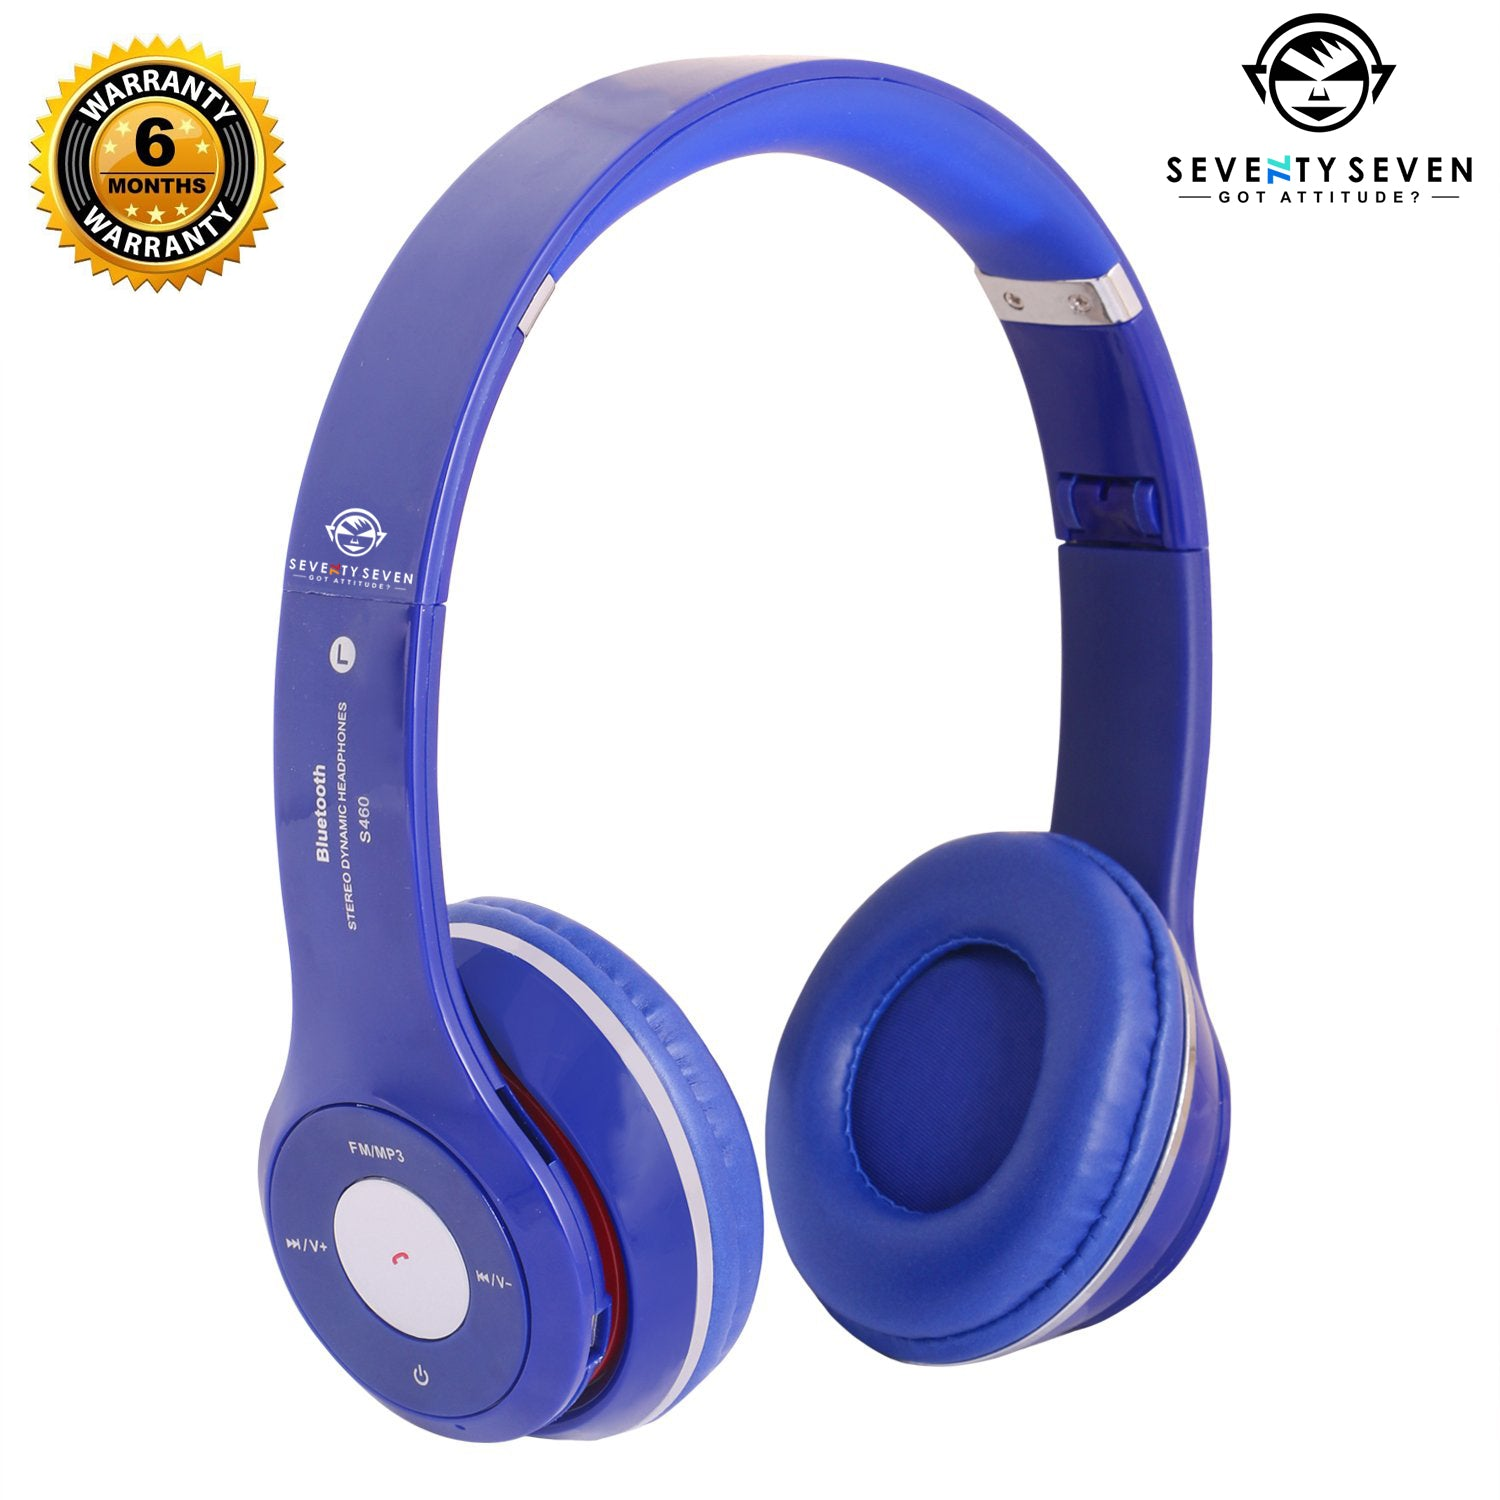 Booster 460 Solo Wireless Headphone